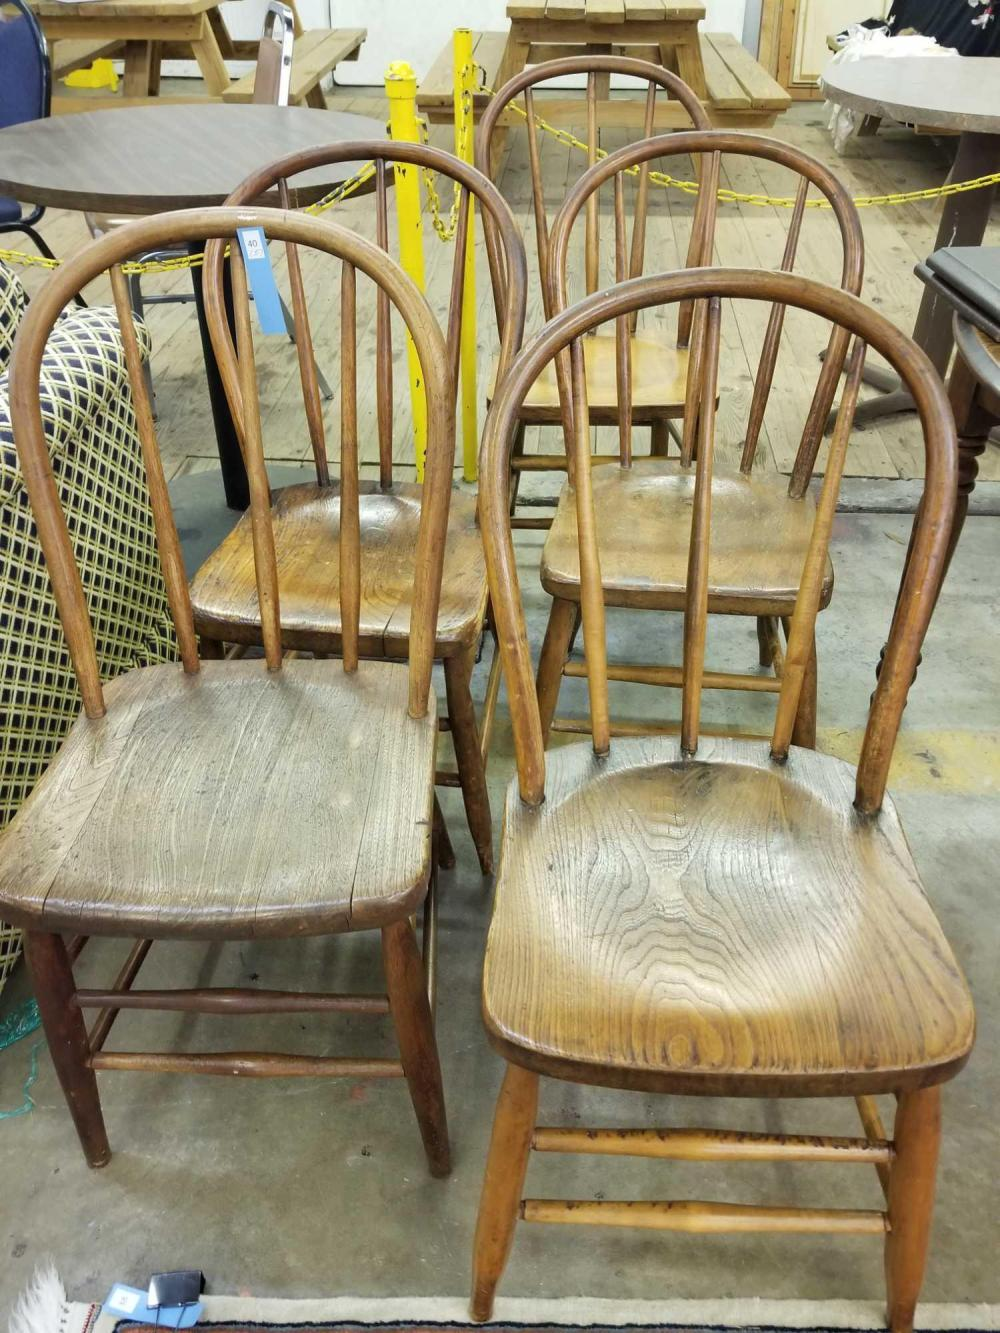 ANTIQUE BENTWOOD KITCHEN CHAIRS - SET OF 5